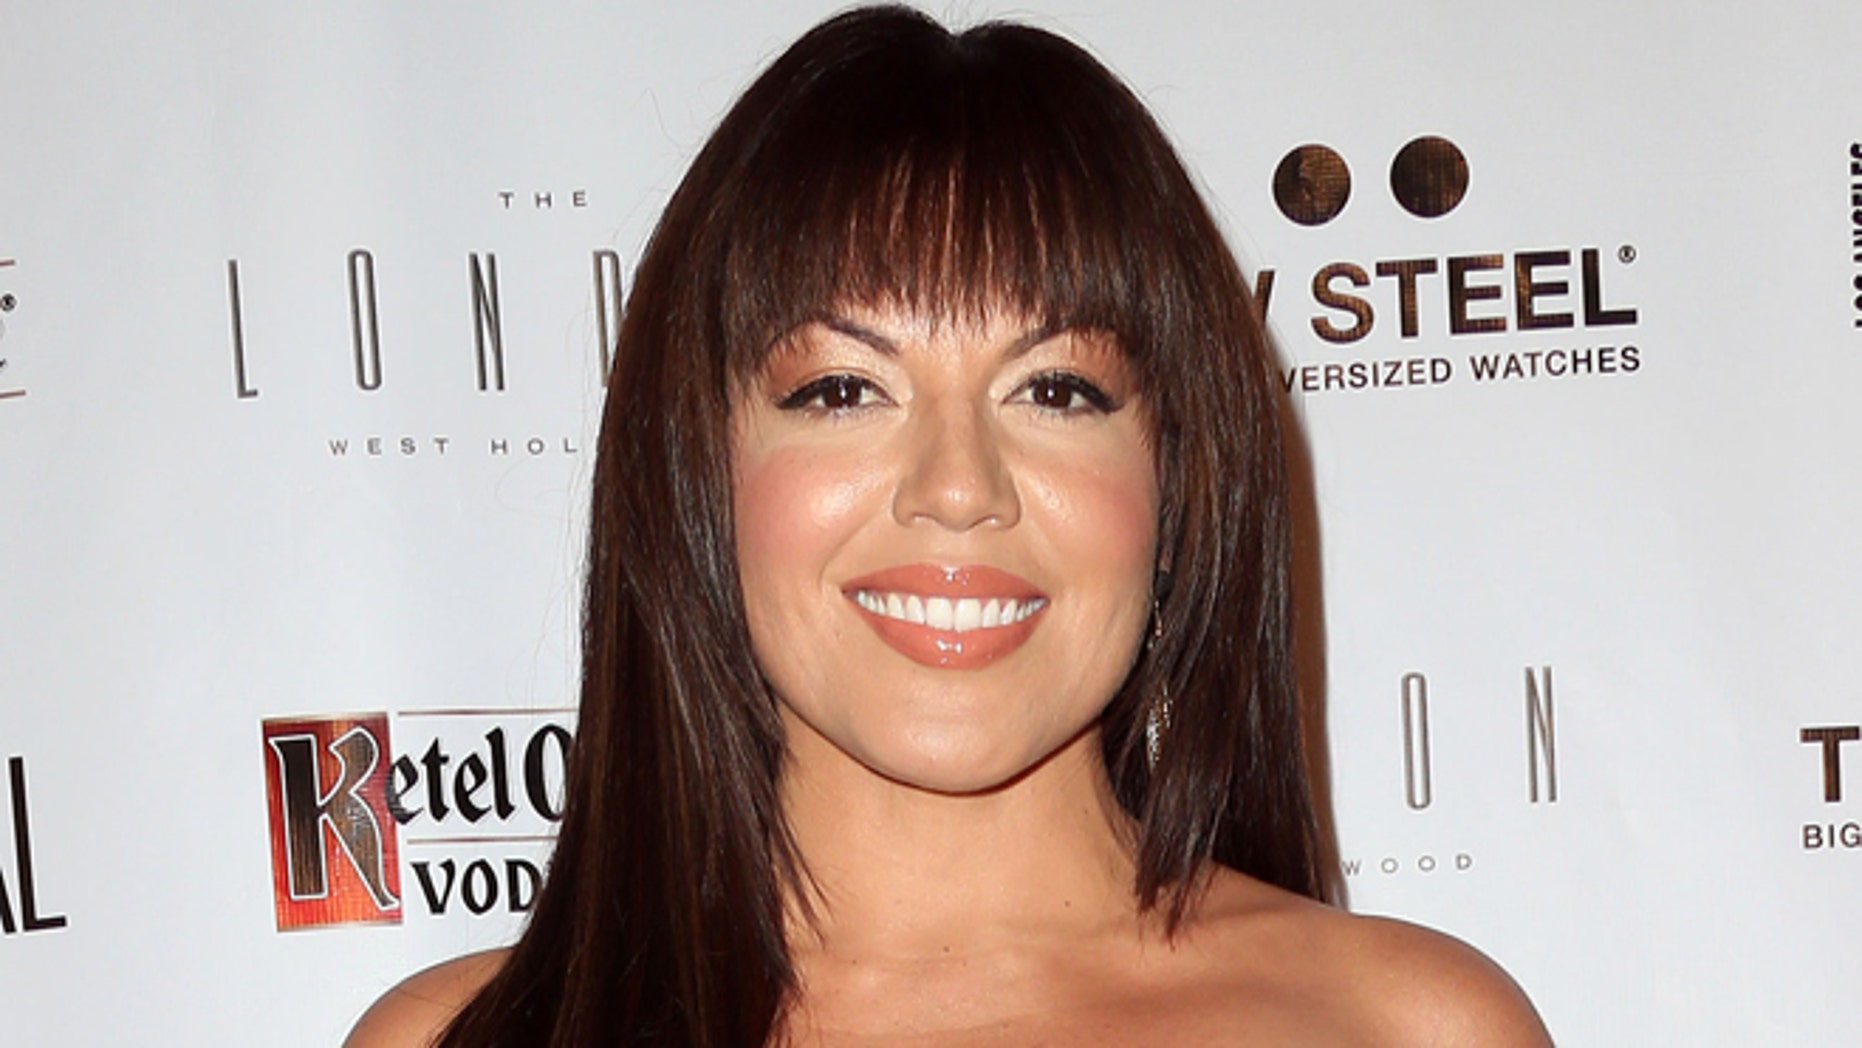 WEST HOLLYWOOD, CA - SEPTEMBER 20:  Actress Sara Ramirez attends Los Angeles Confidential Magazine's Annual Pre-Emmy Kick-Off Celebration at The London West Hollywood on September 20, 2012 in West Hollywood, California.  (Photo by Frederick M. Brown/Getty Images)